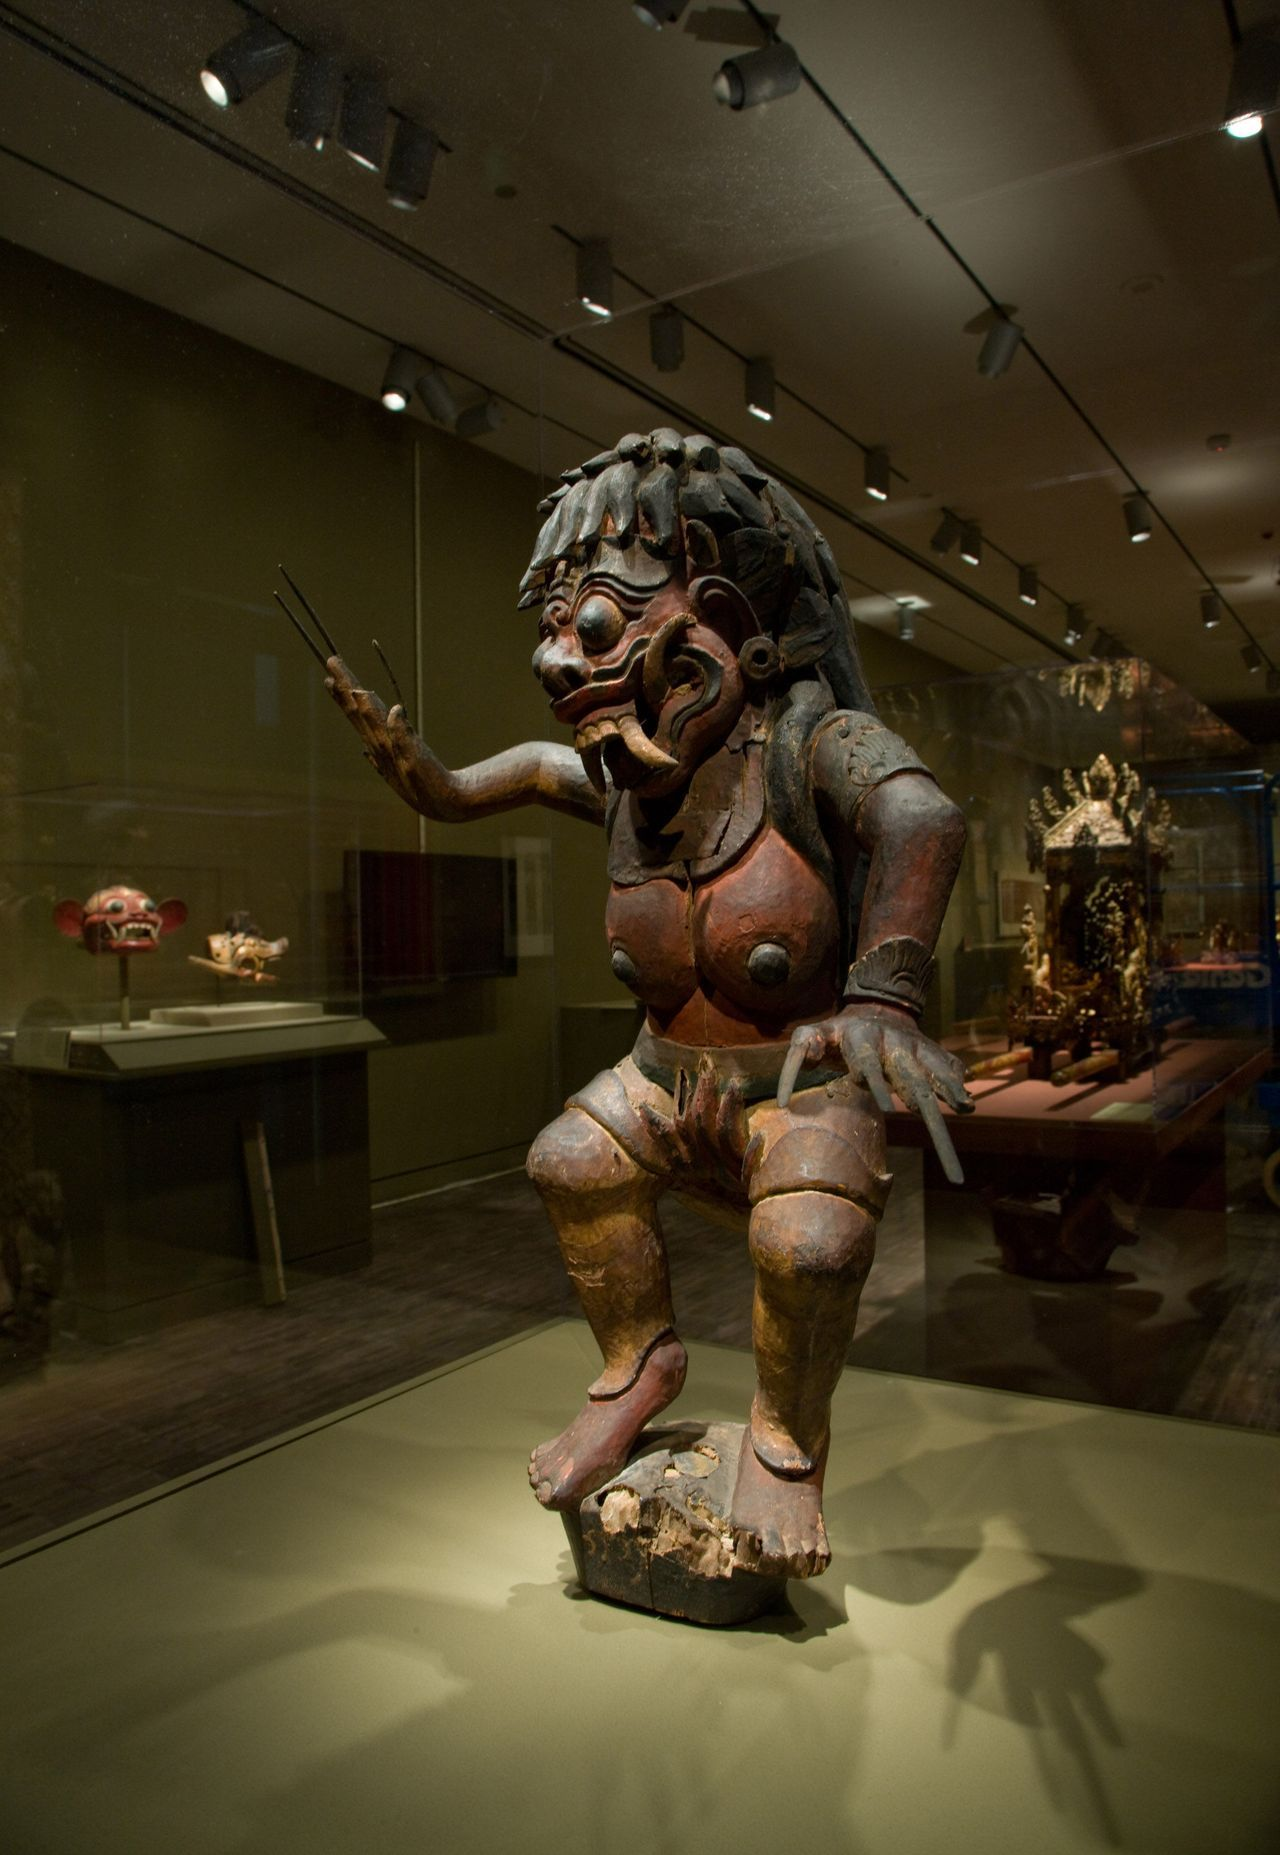 Ancient Bali sculpture at the Asian Art Museum, San Francisco